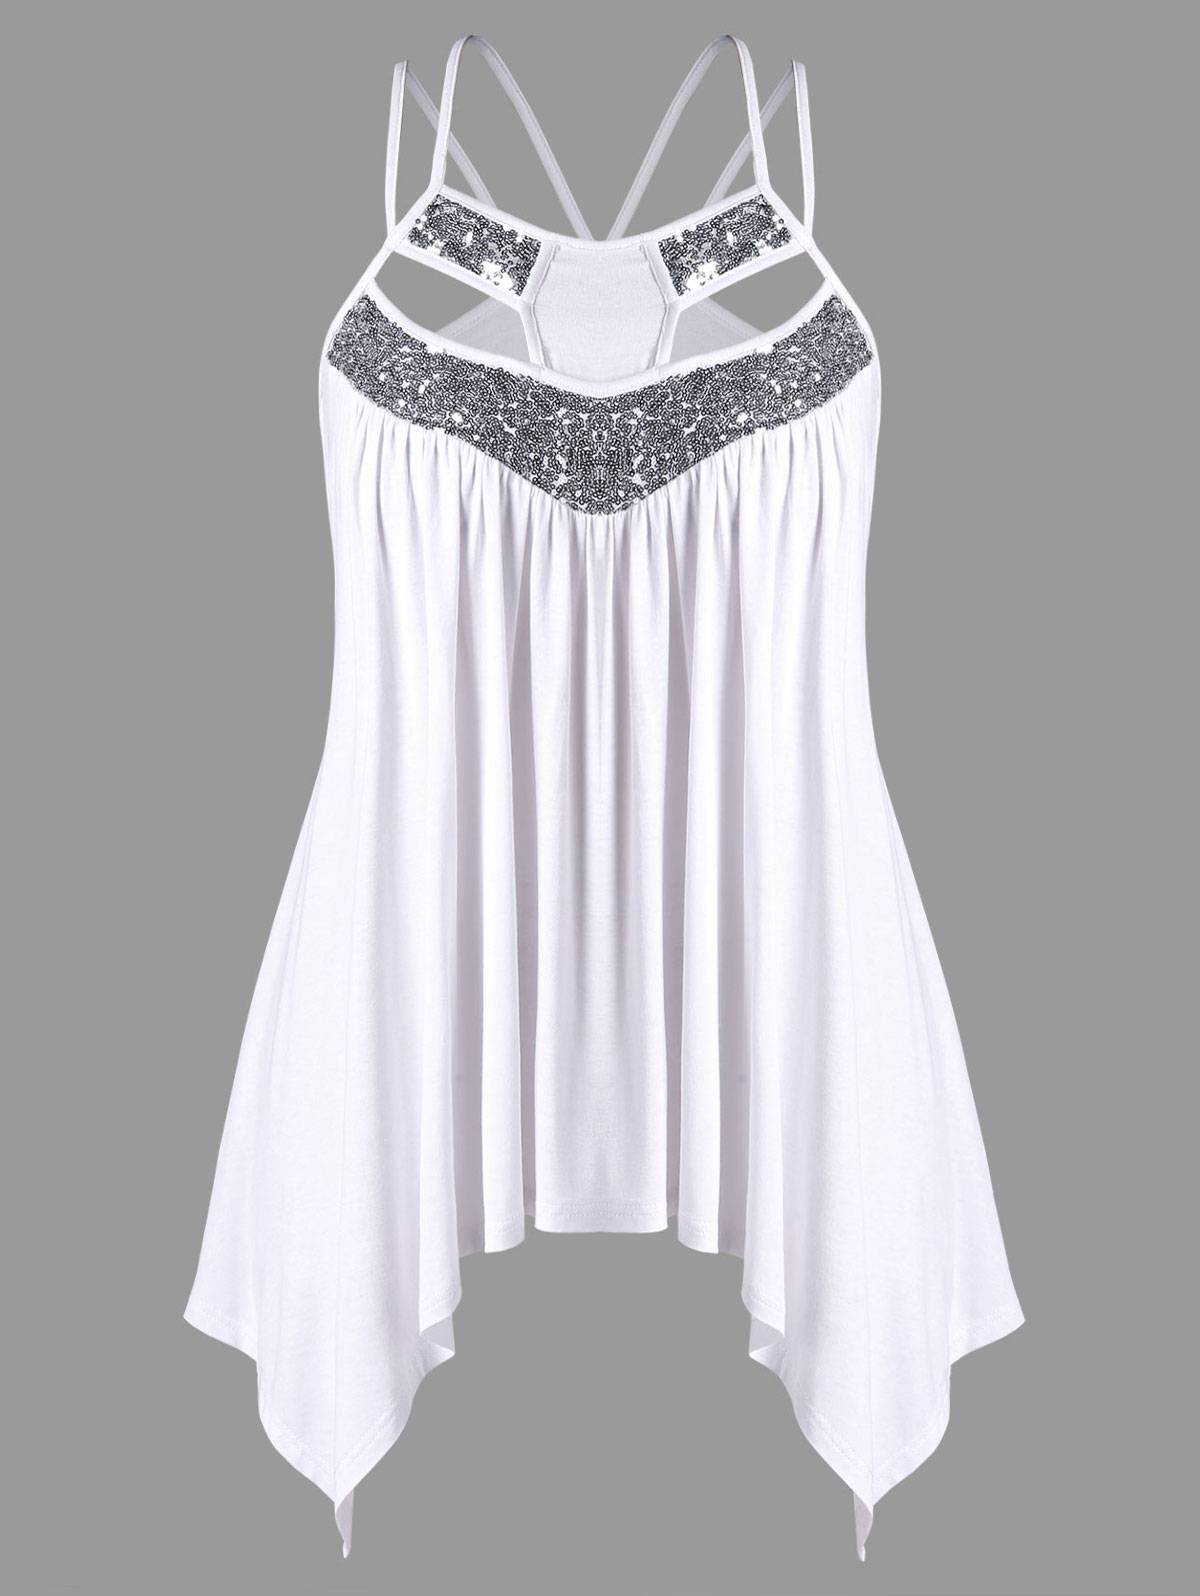 Wipalo Plus Size Glittery Strappy Sequined Trim Crescent Hem Cami Top Female Summer 2018 Women Tops Workout Spaghetti Strap Tank